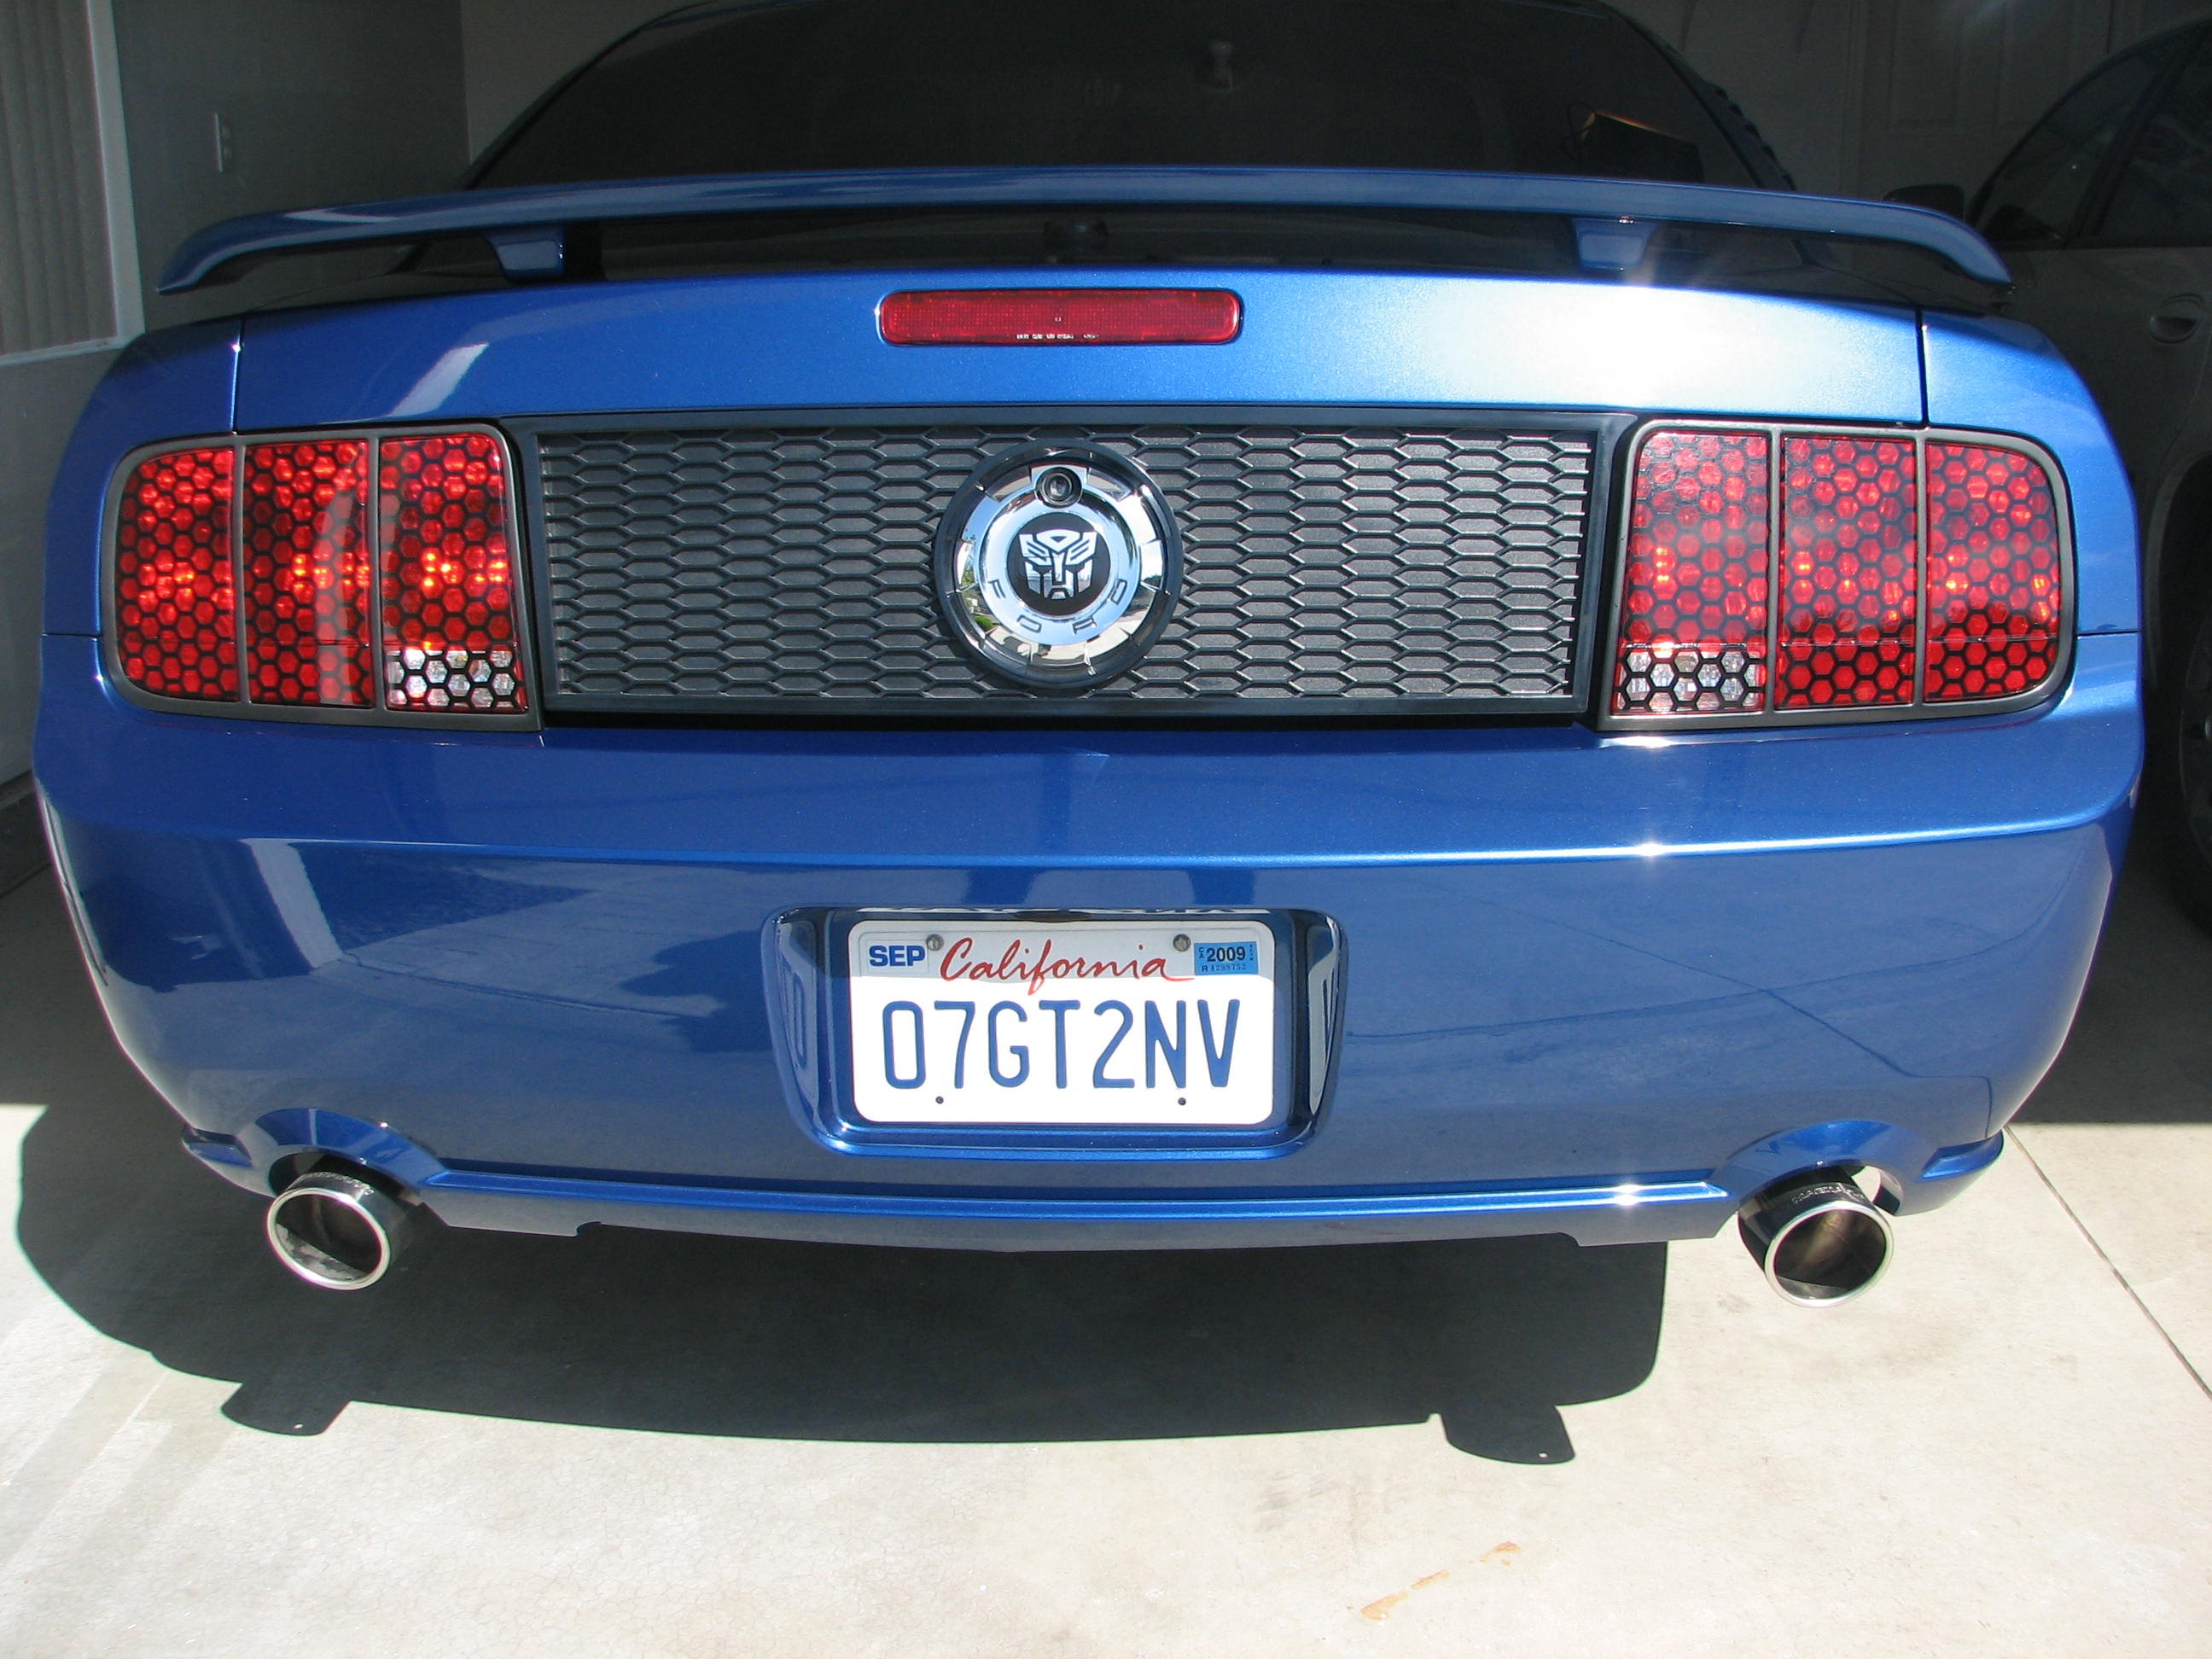 Magnetic blackout panel for 2005+ Mustang-img_0033.jpg